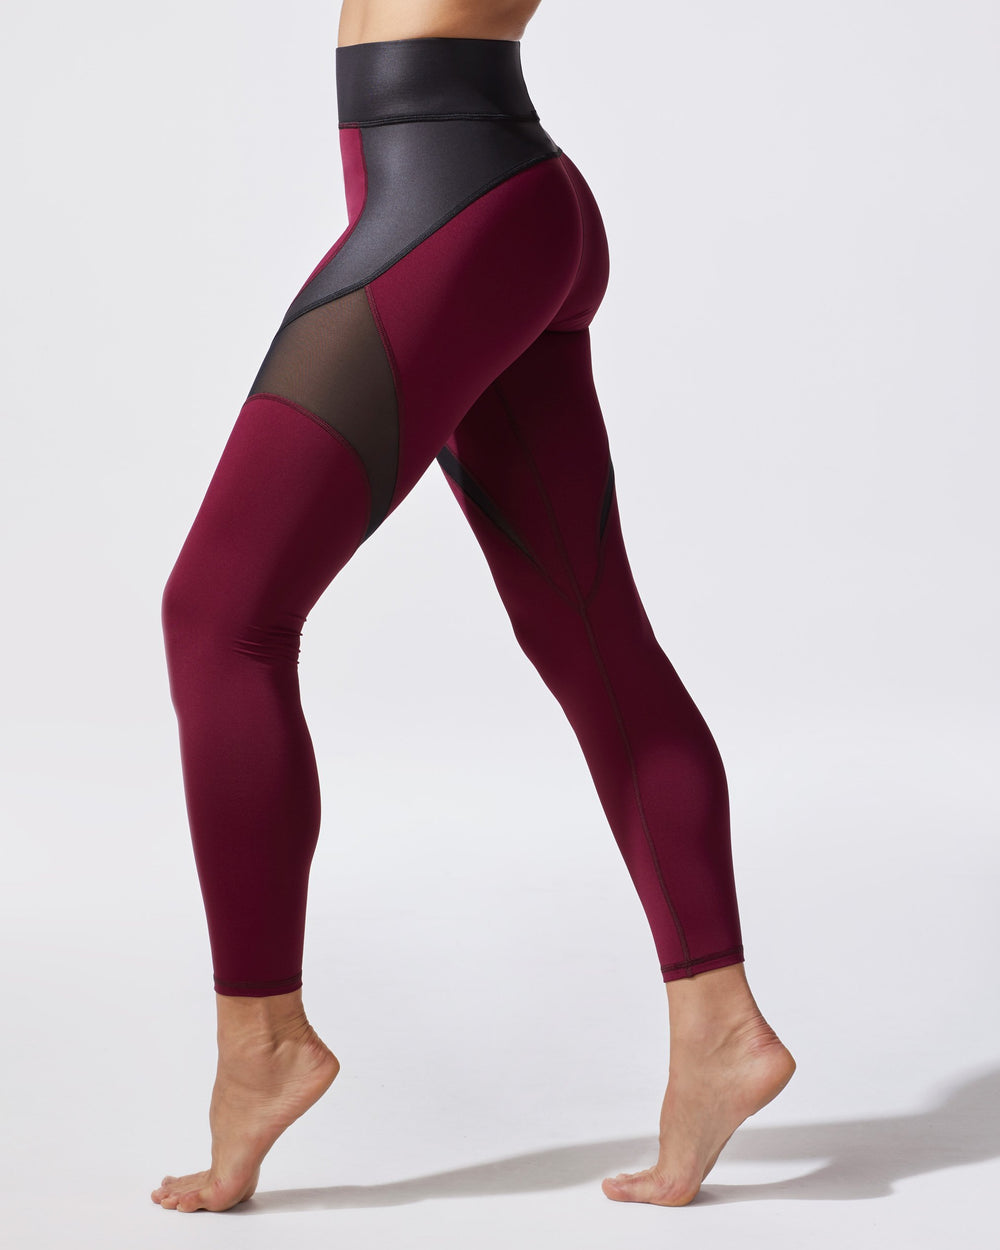 Glow Legging - Shiraz